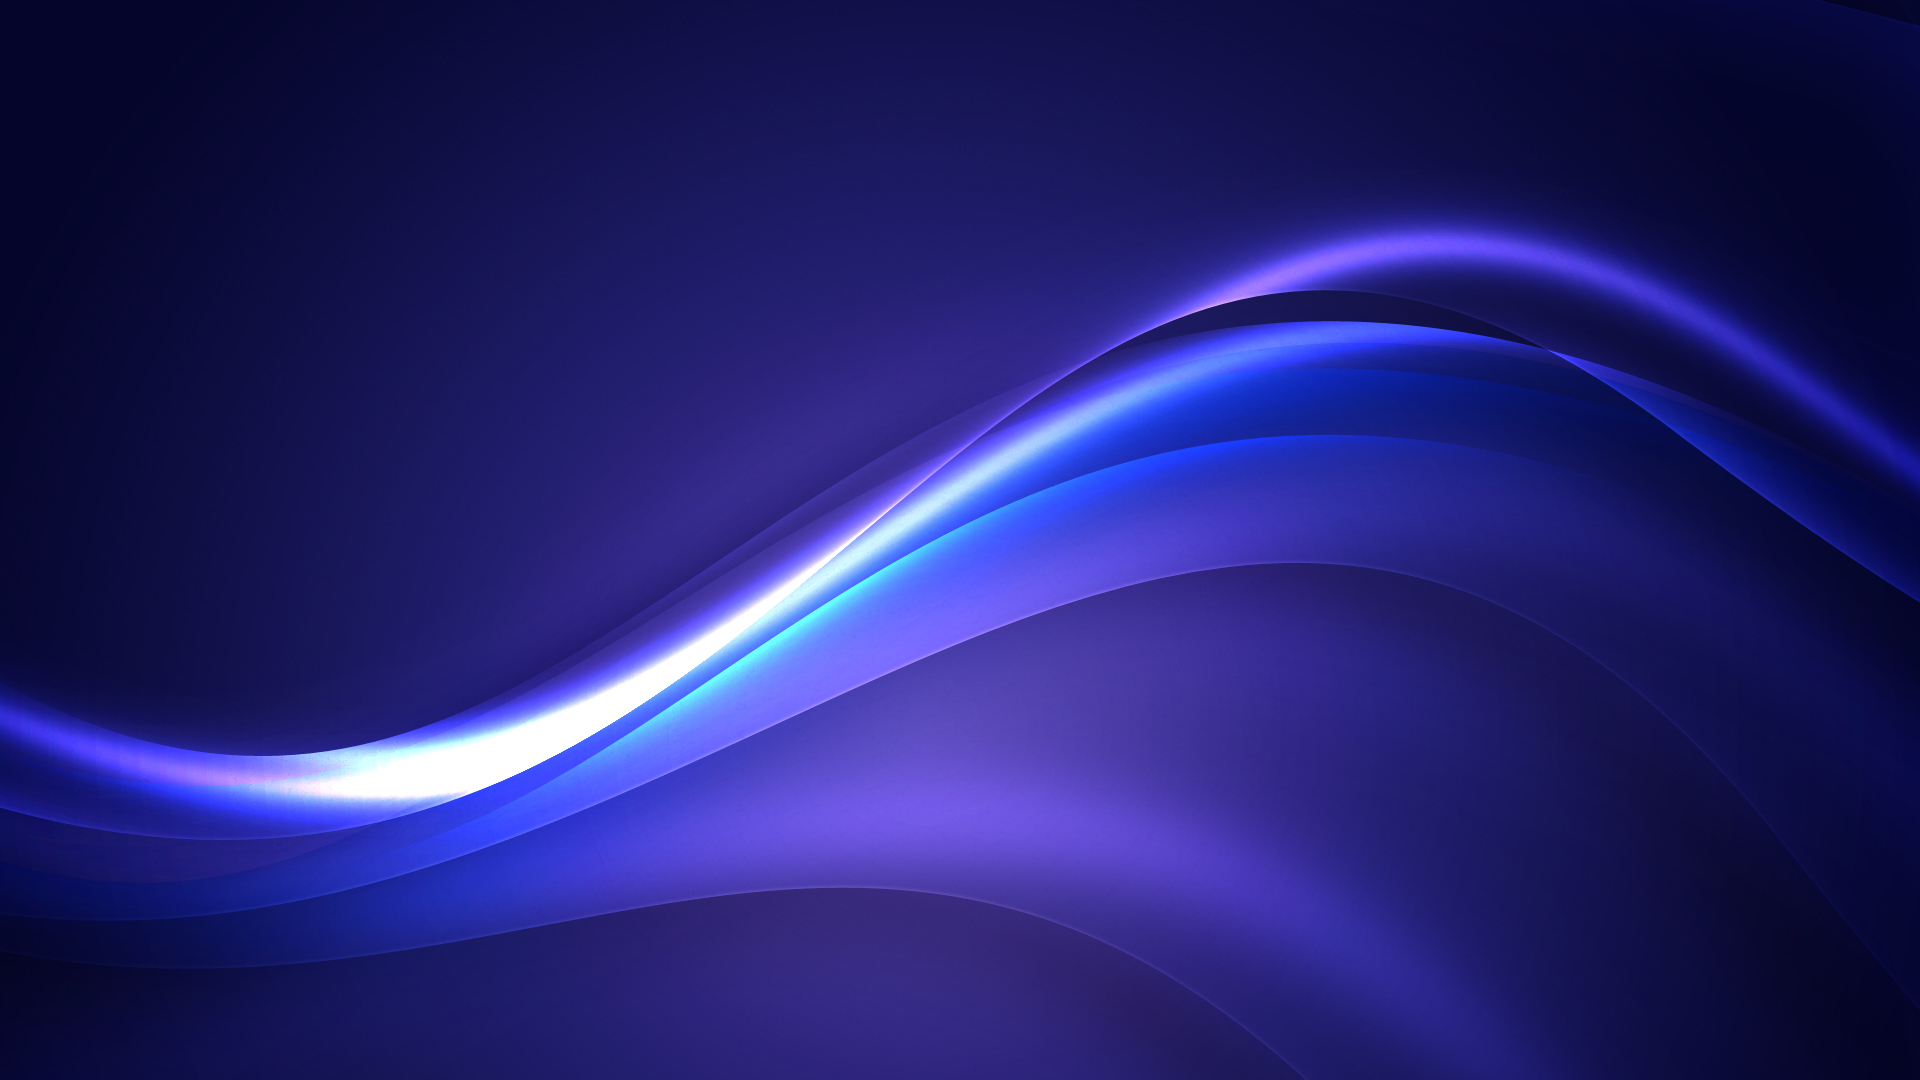 Background Design Blue Curved Lines